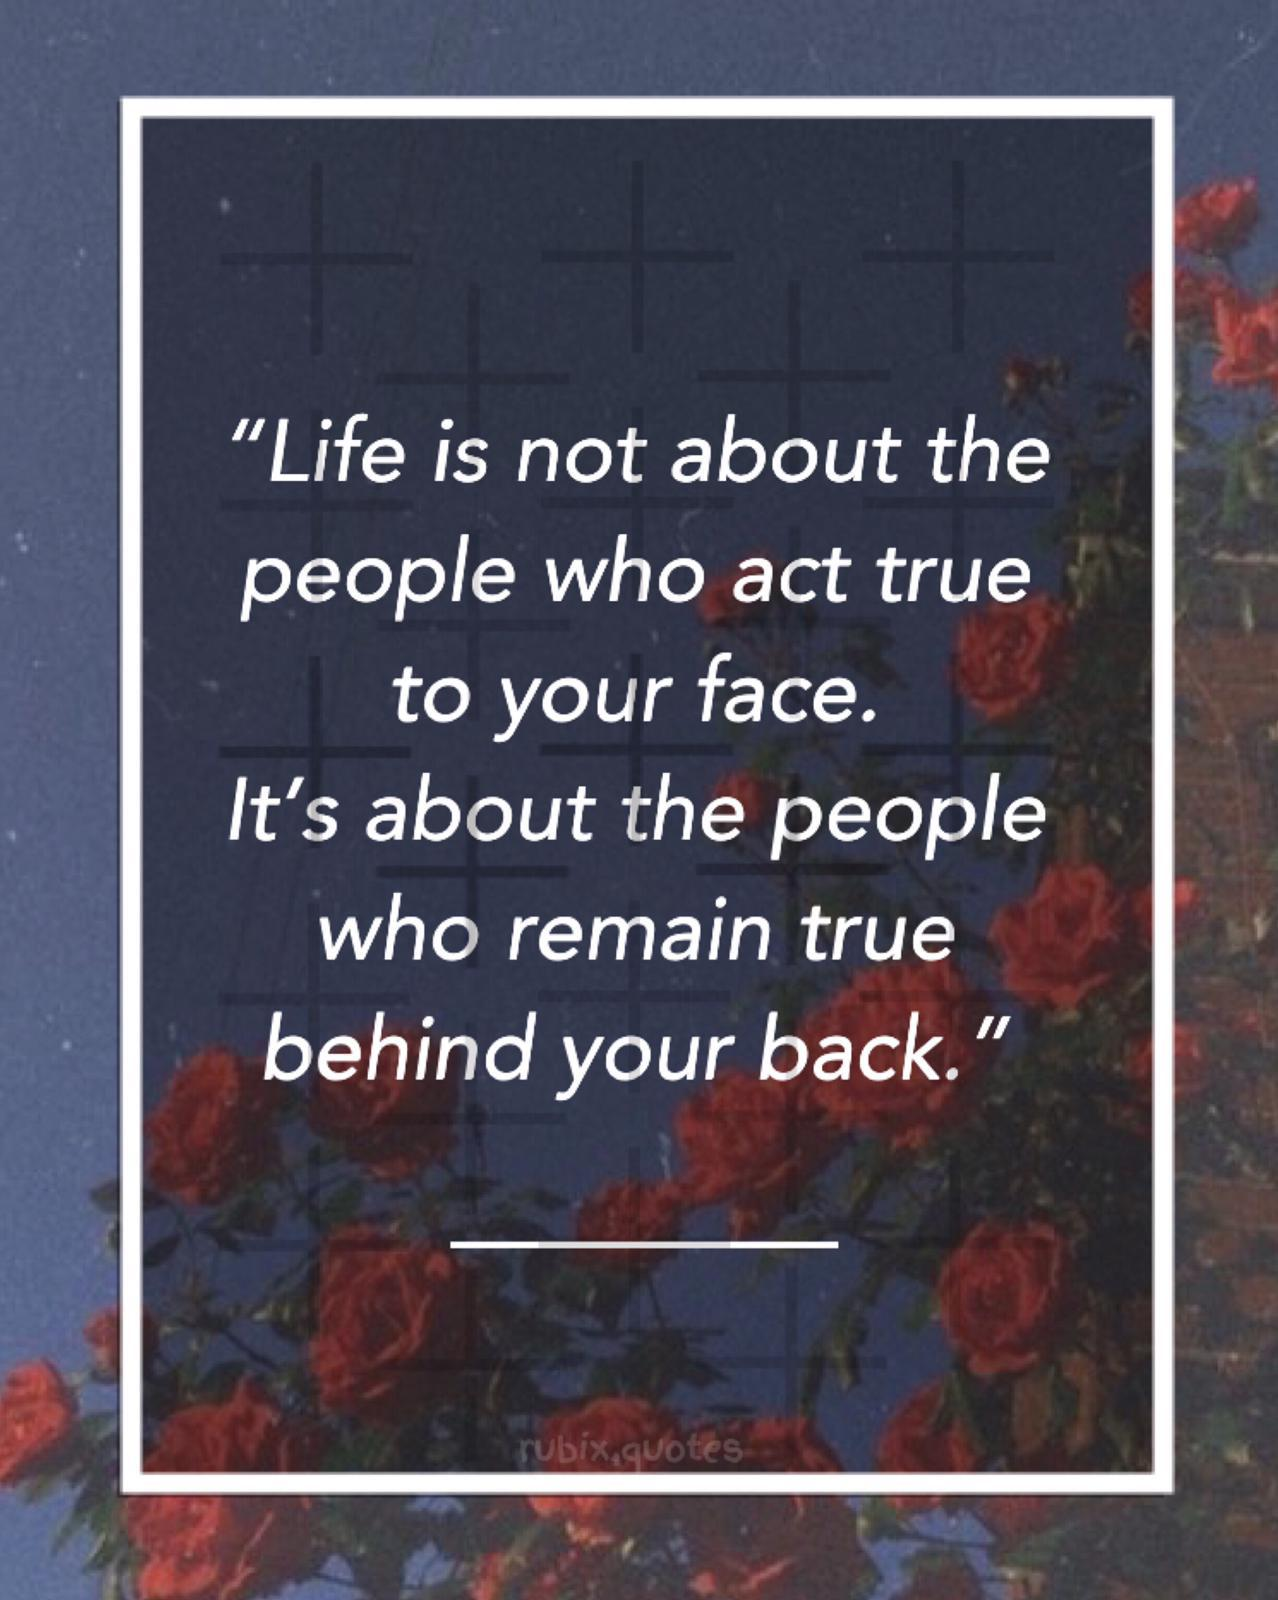 """Life is not about the people who act true to your face. It's about the people who remain true behind your back. "" https://inspirational.ly"